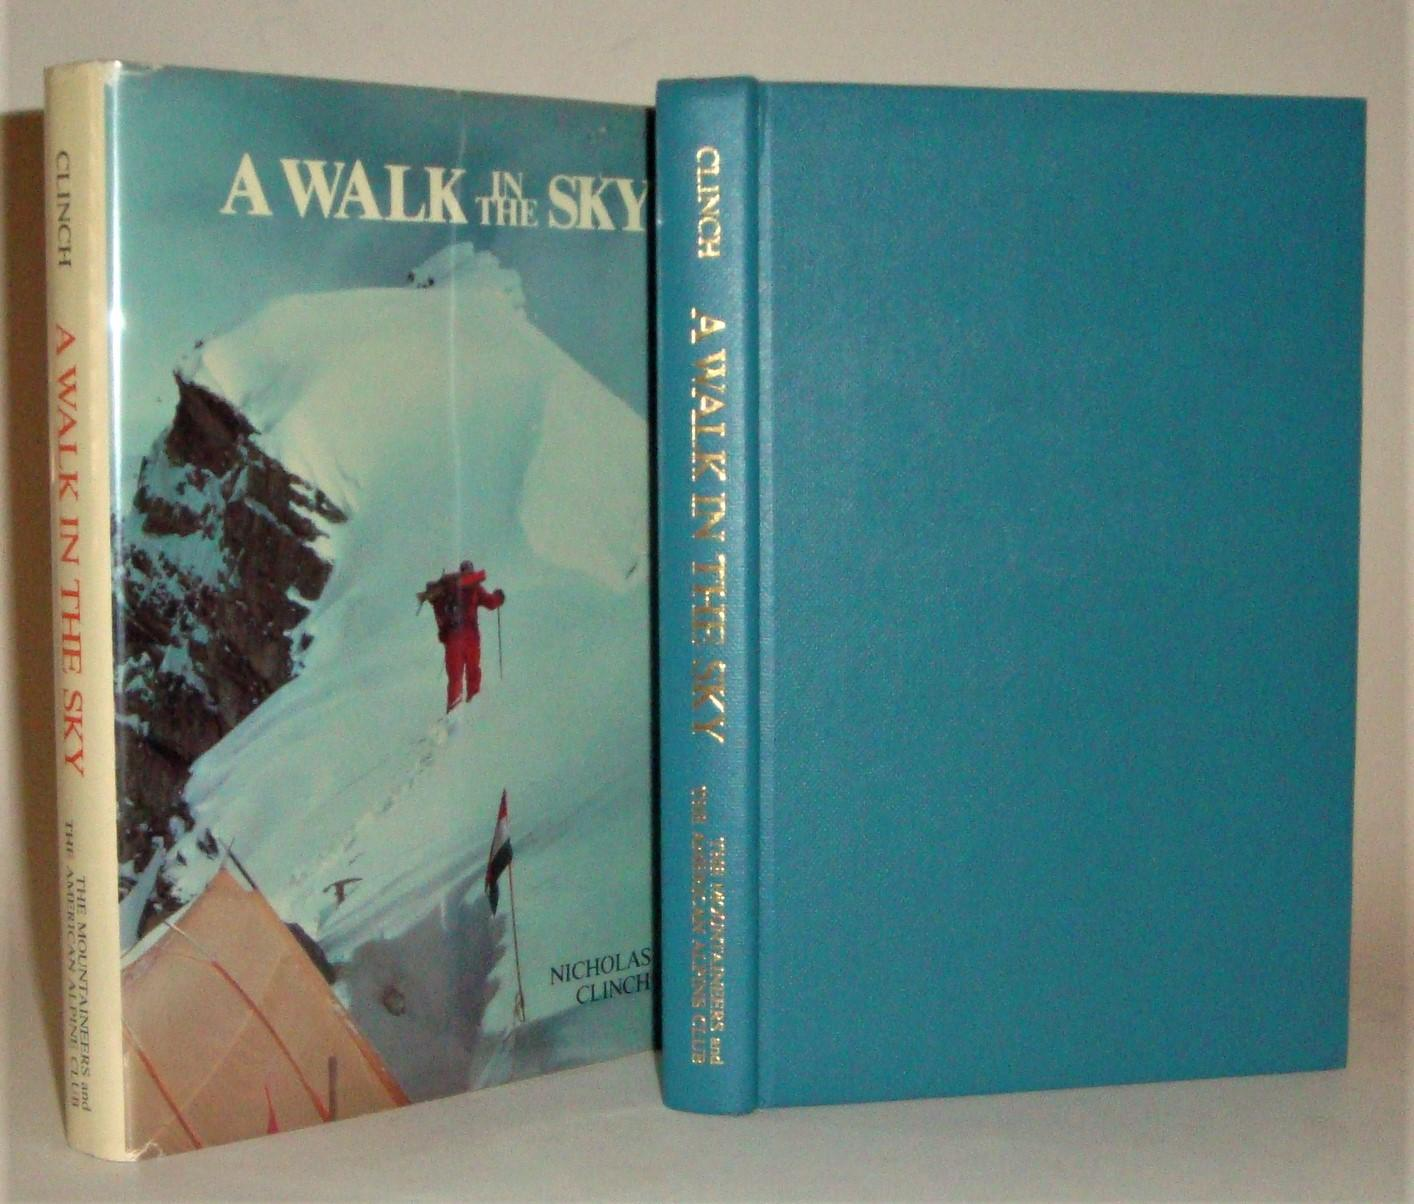 A_Walk_in_the_Sky_Climbing_Hidden_Peak_Clinch_Nicholas_Très_bon_Couverture_rigide